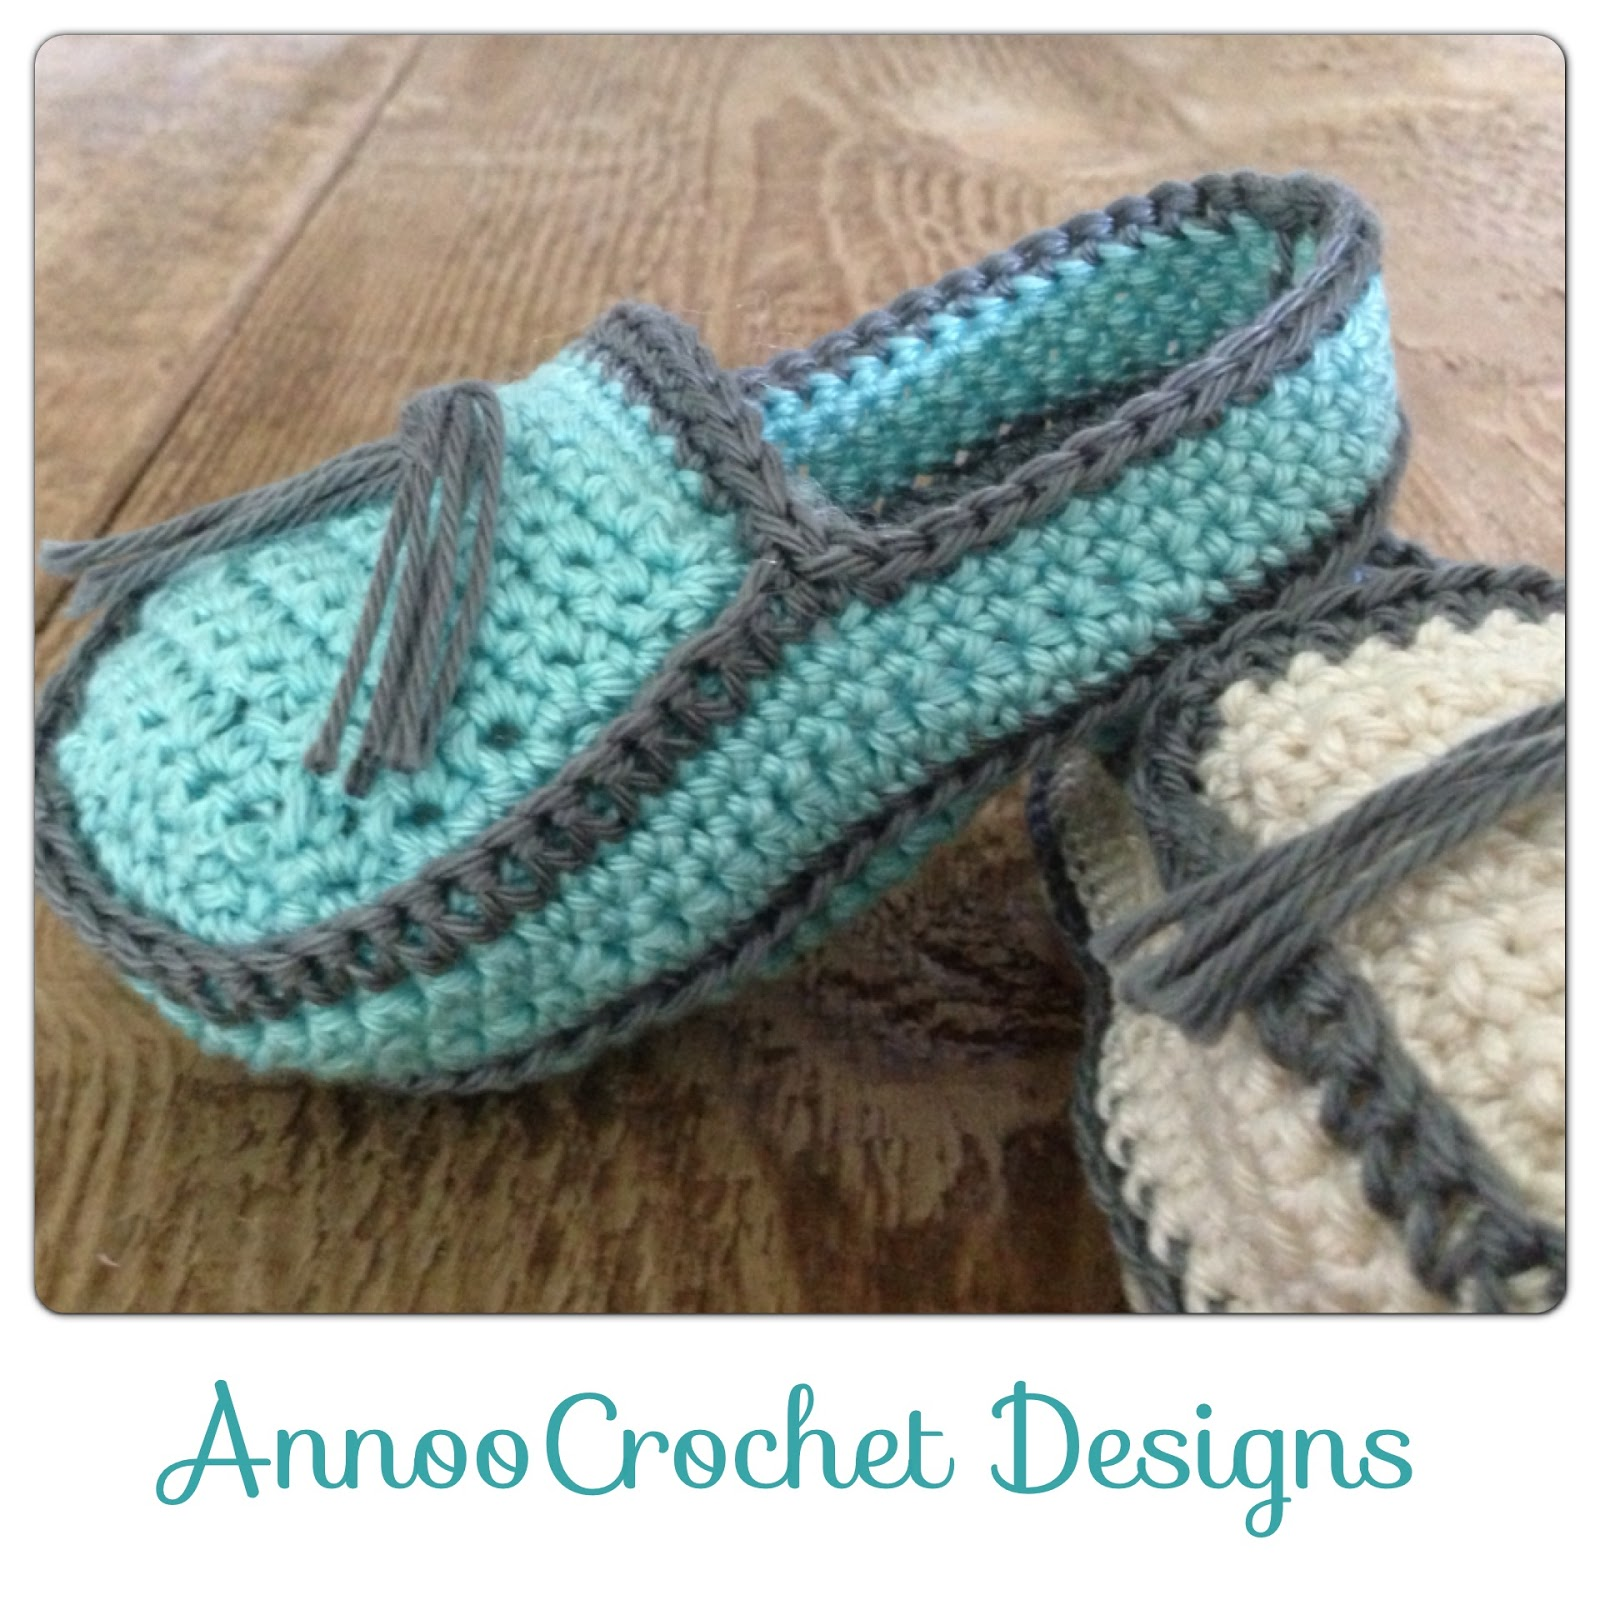 Free Crochet Pattern Loafer Slippers : 1000+ images about crochet patterns on Pinterest Crochet ...